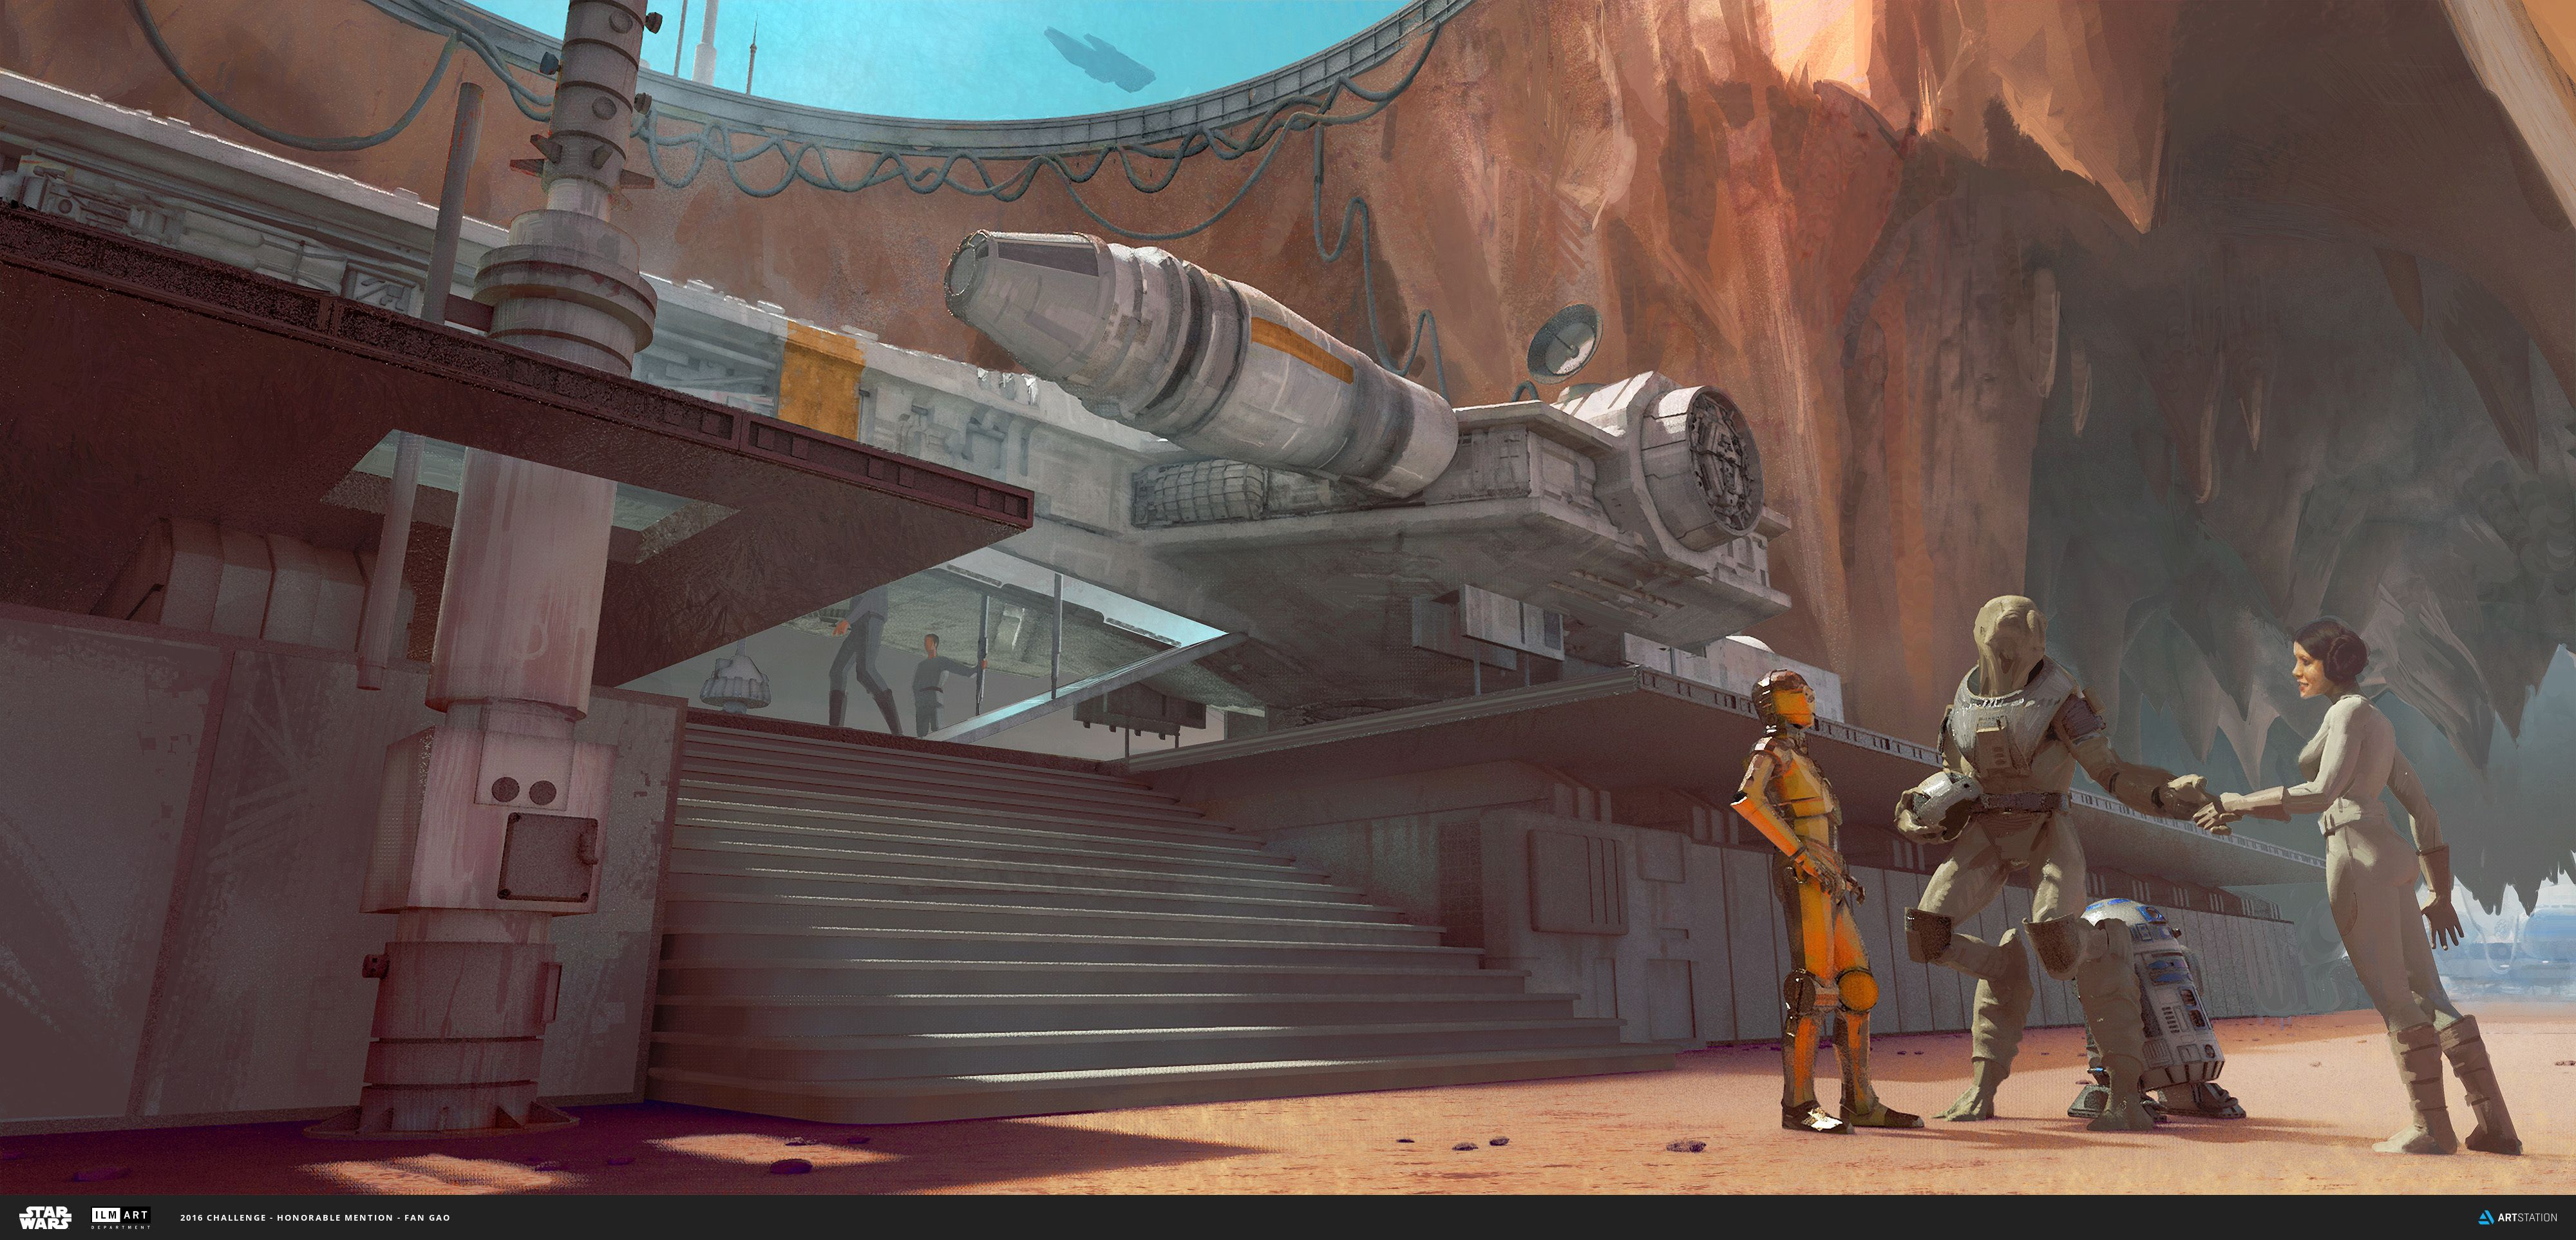 11046 5 37dac35d2715d4a2441b408f9590aa2a Fgao1 Star Wars Concept Art Star Wars Characters Pictures Star Wars Art